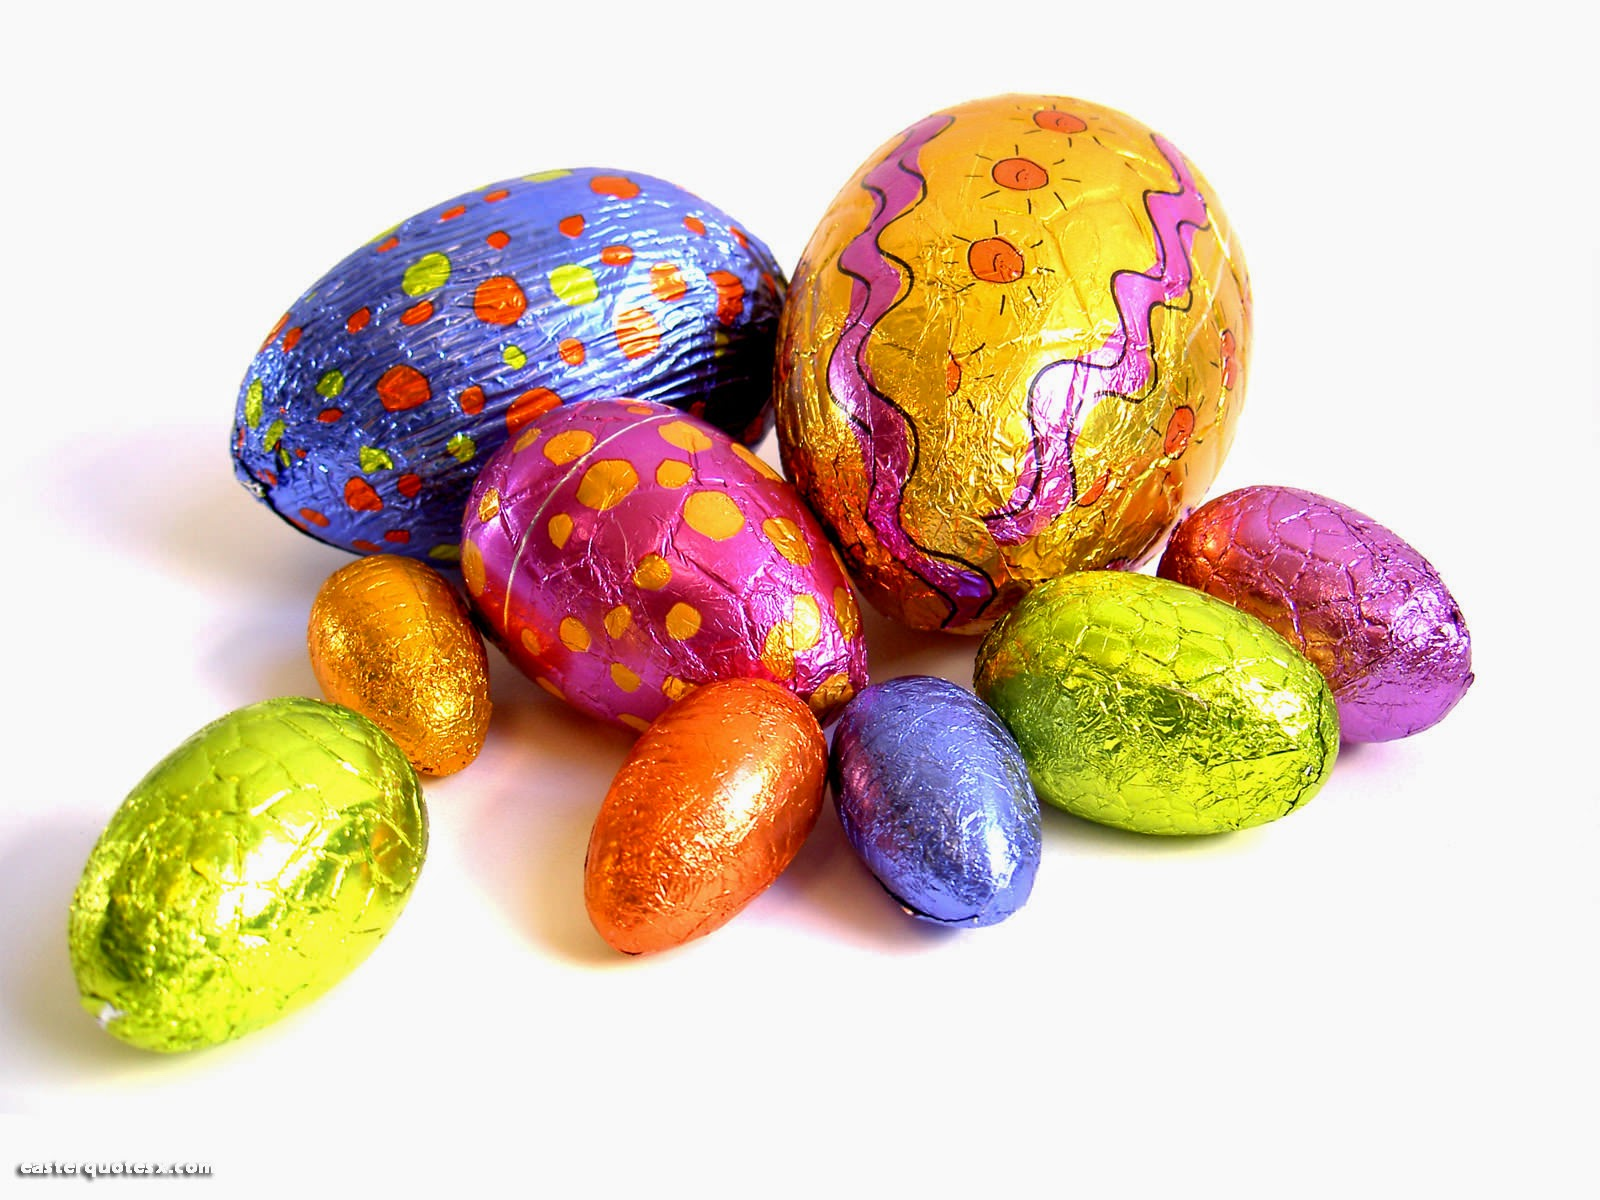 Easter Eggs 2015 Pictures - Easter Eggs 2015 Images - Easter Eggs 2015 WallPaper Easter Eggs 2015 Pictures - Easter Eggs 2015 Images - Easter Eggs 2015 WallPaper Easter Eggs 2015 Pictures - Easter Eggs 2015 Images - Easter Eggs 2015 WallPaper